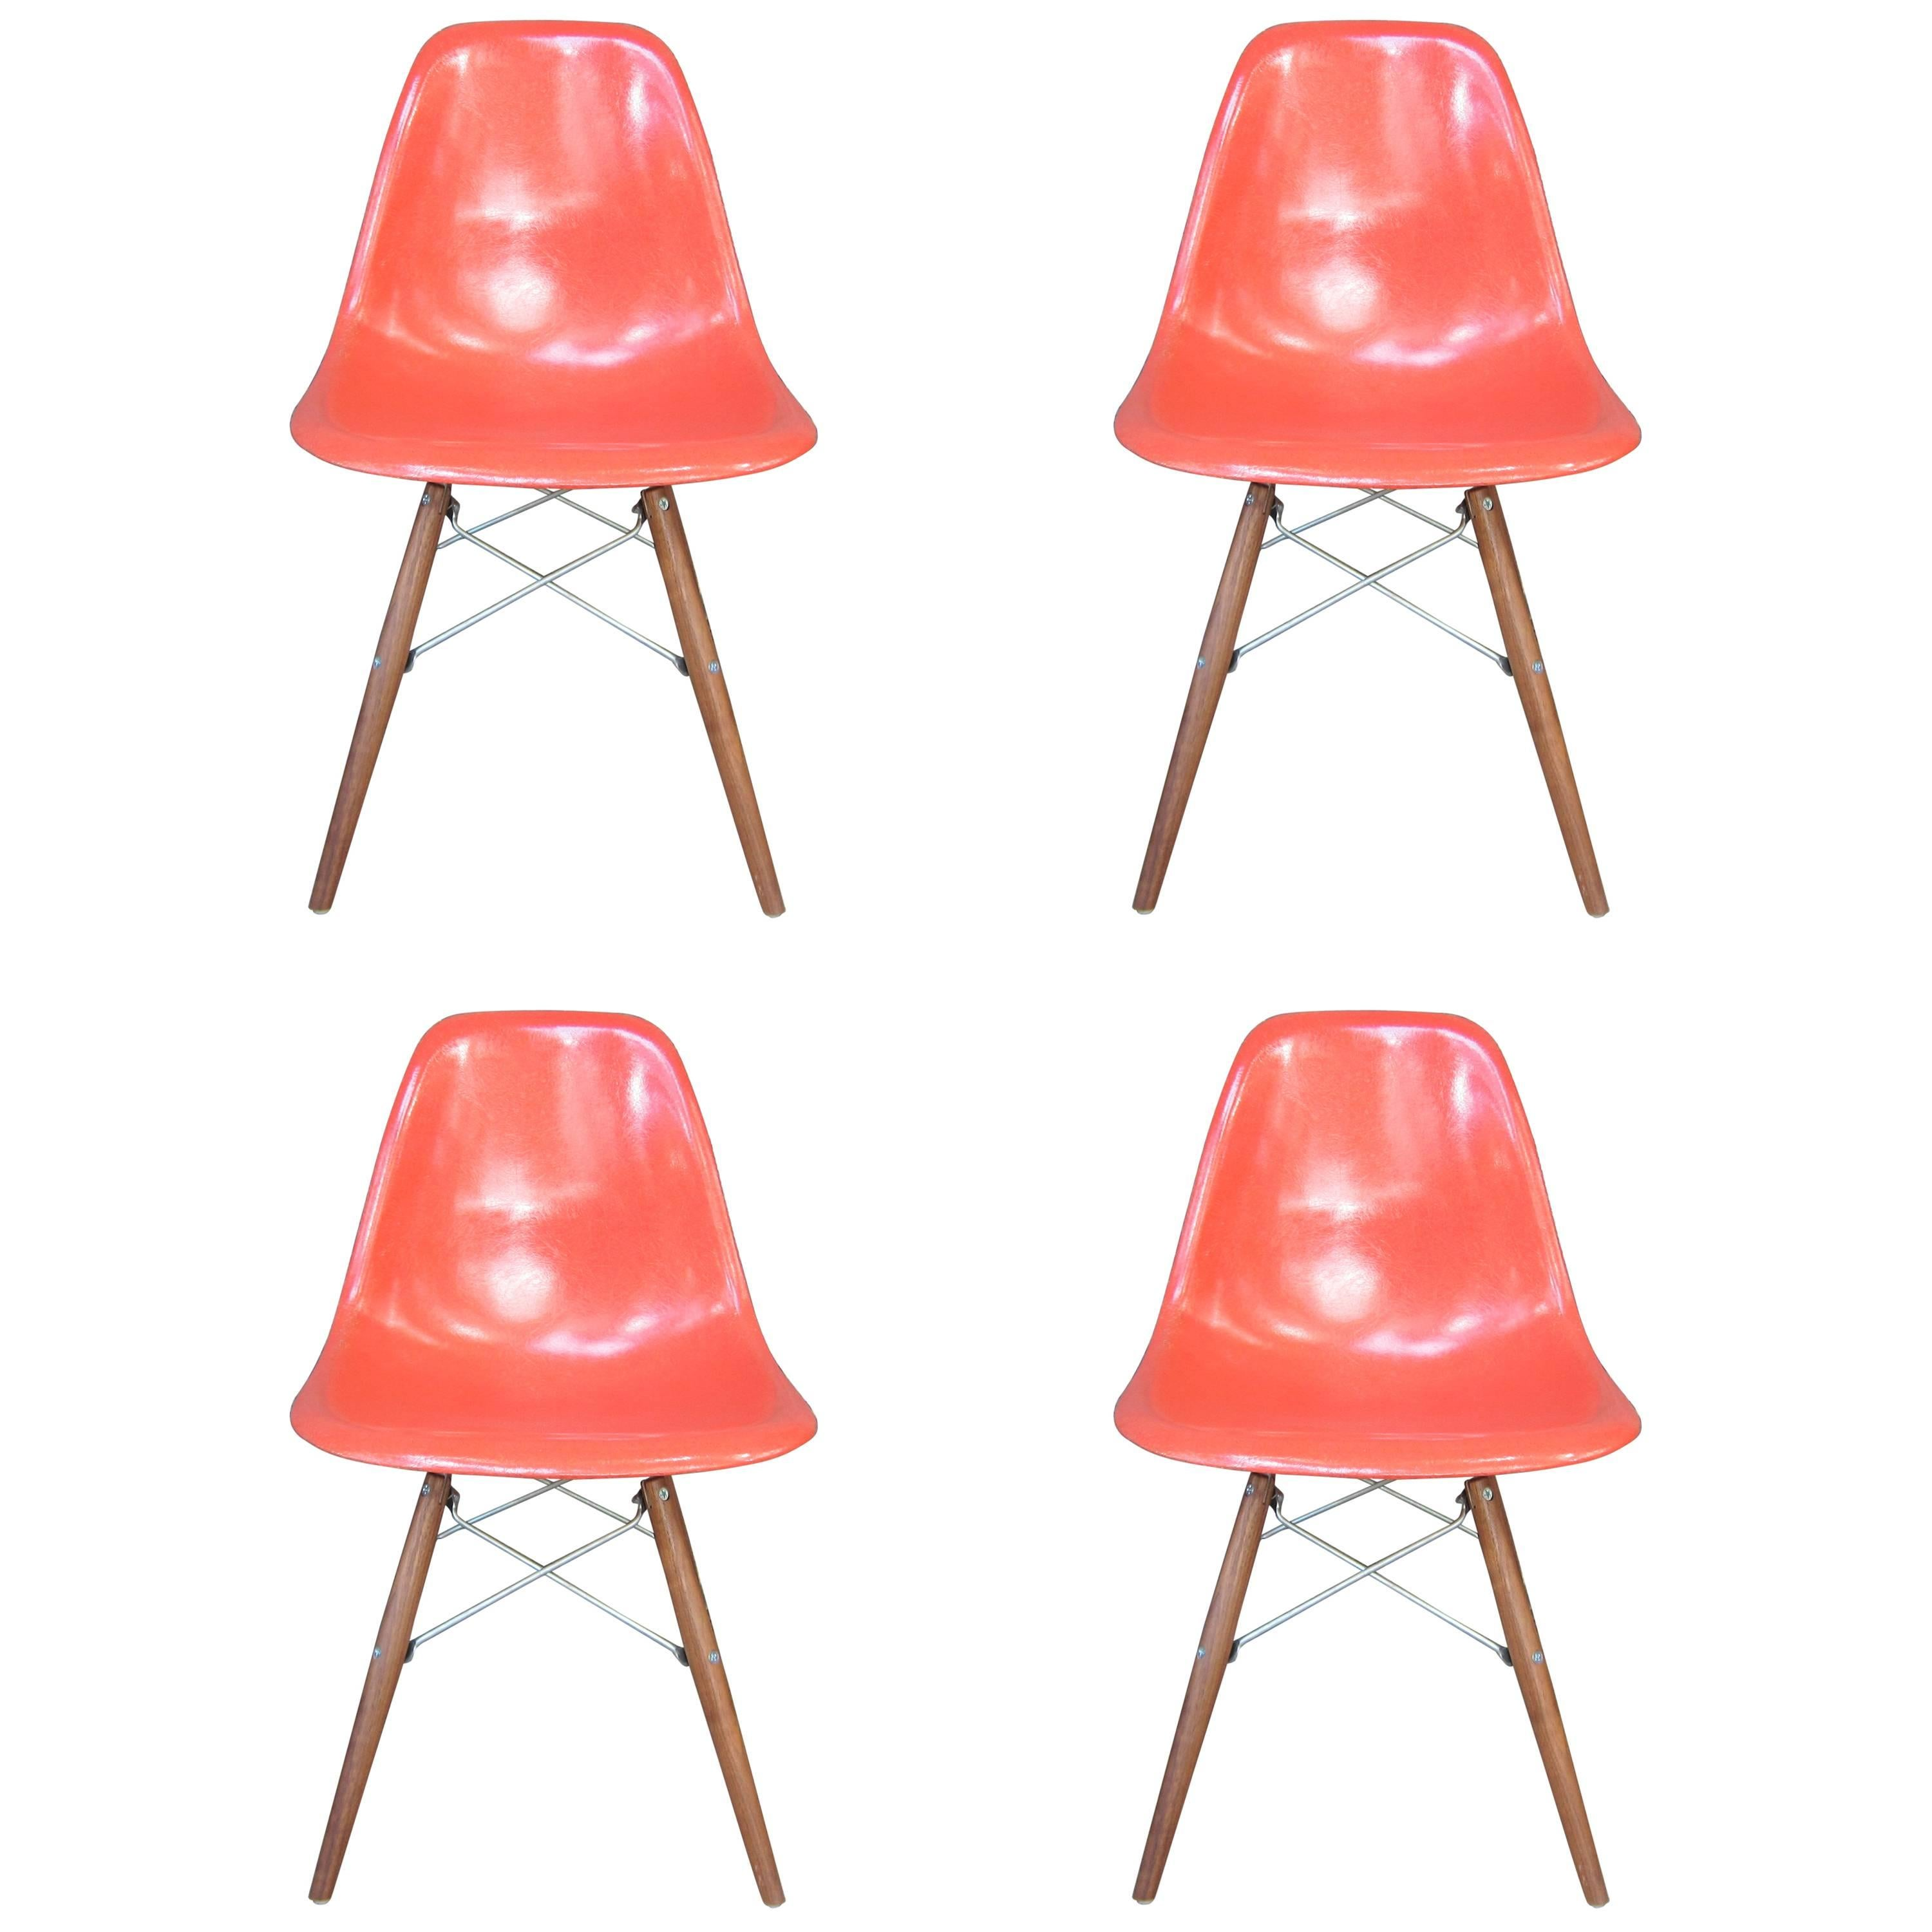 Four Herman Miller Eames Dining Chairs